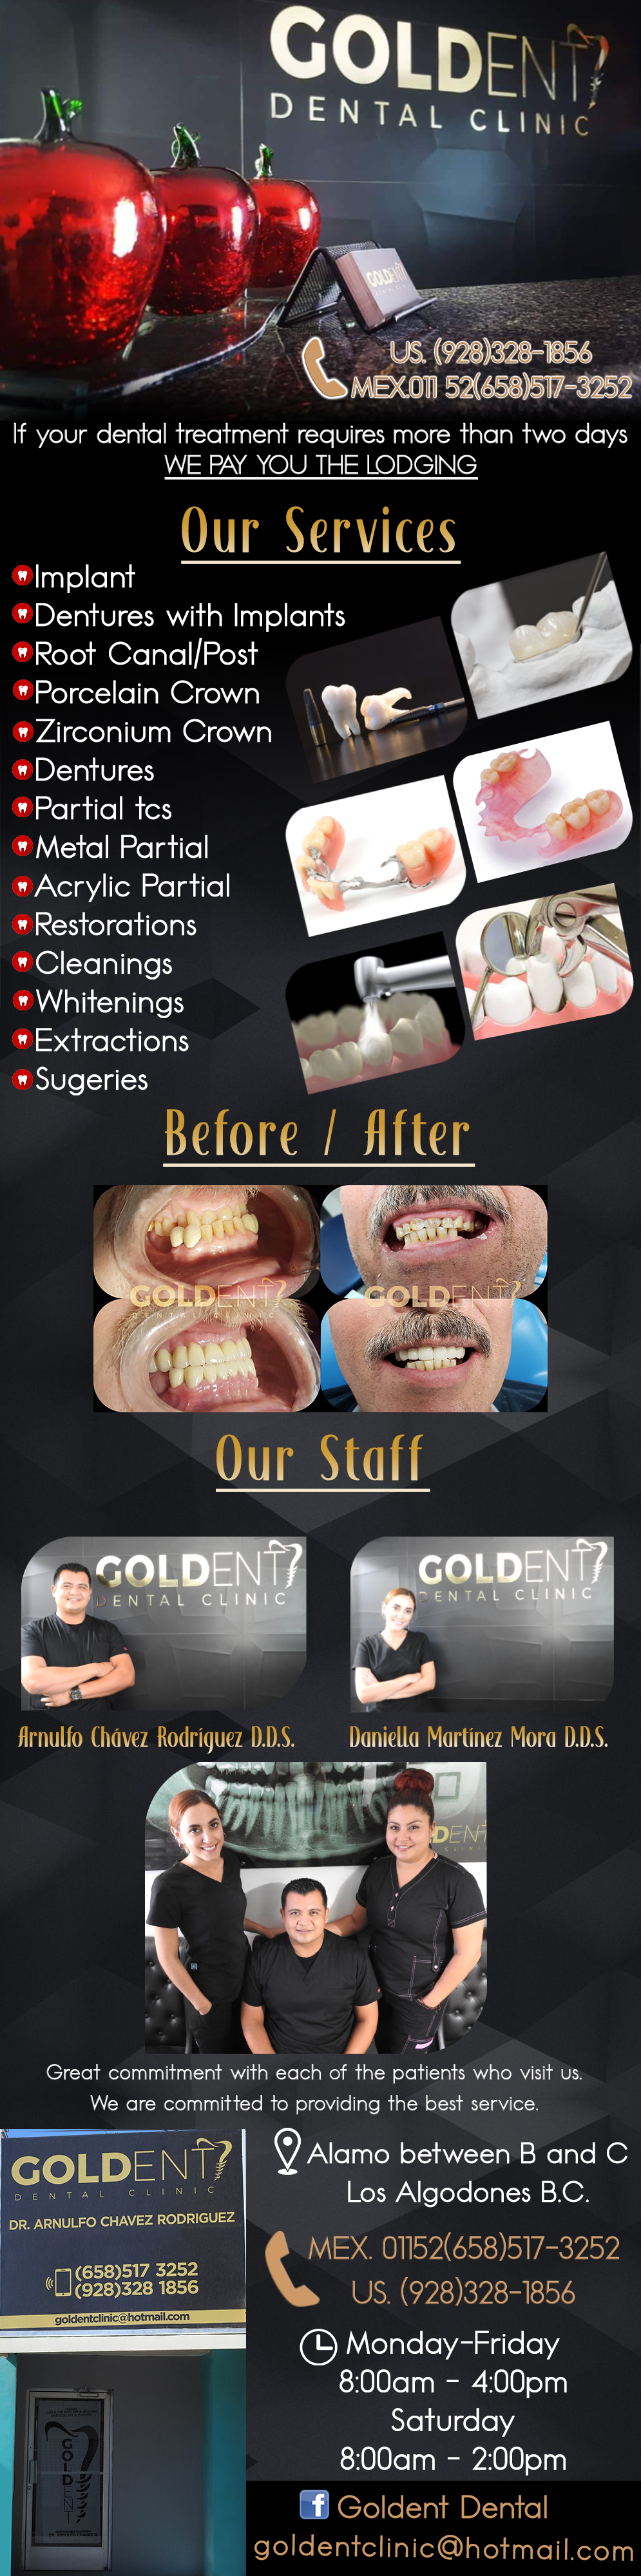 GOLDENT DENTAL CLINIC  Arnulfo Chávez Rodríguez DDS in Algodones  in Algodones  DENTAL SERVICES: Flexible Partials Porcelain Crown & Bridge Traditional Acrylic and Flexible Dentures Dentures over Implants Implants with bridge Traditional Partials Veneers Root Canal Therapy Fillings in Porcelain or Zirconia E-max Traditional & Deep Cleaning Relines (Hard Soft) Repair to Dentures Prescriptions General Oral Surgery Wisdom Tooth Surger          DENTAL SERVICES: Flexible Partials Porcelain Crown & Bridge Traditional Acrylic and Flexible Dentures Dentures over Implants Implants with bridge Traditional Partials Veneers Root Canal Therapy Fillings in Porcelain or Zirconia E-max Traditional & Deep Cleaning Relines (Hard Soft) Repair to Dentures Prescriptions General Oral Surgery Wisdom Tooth Surger